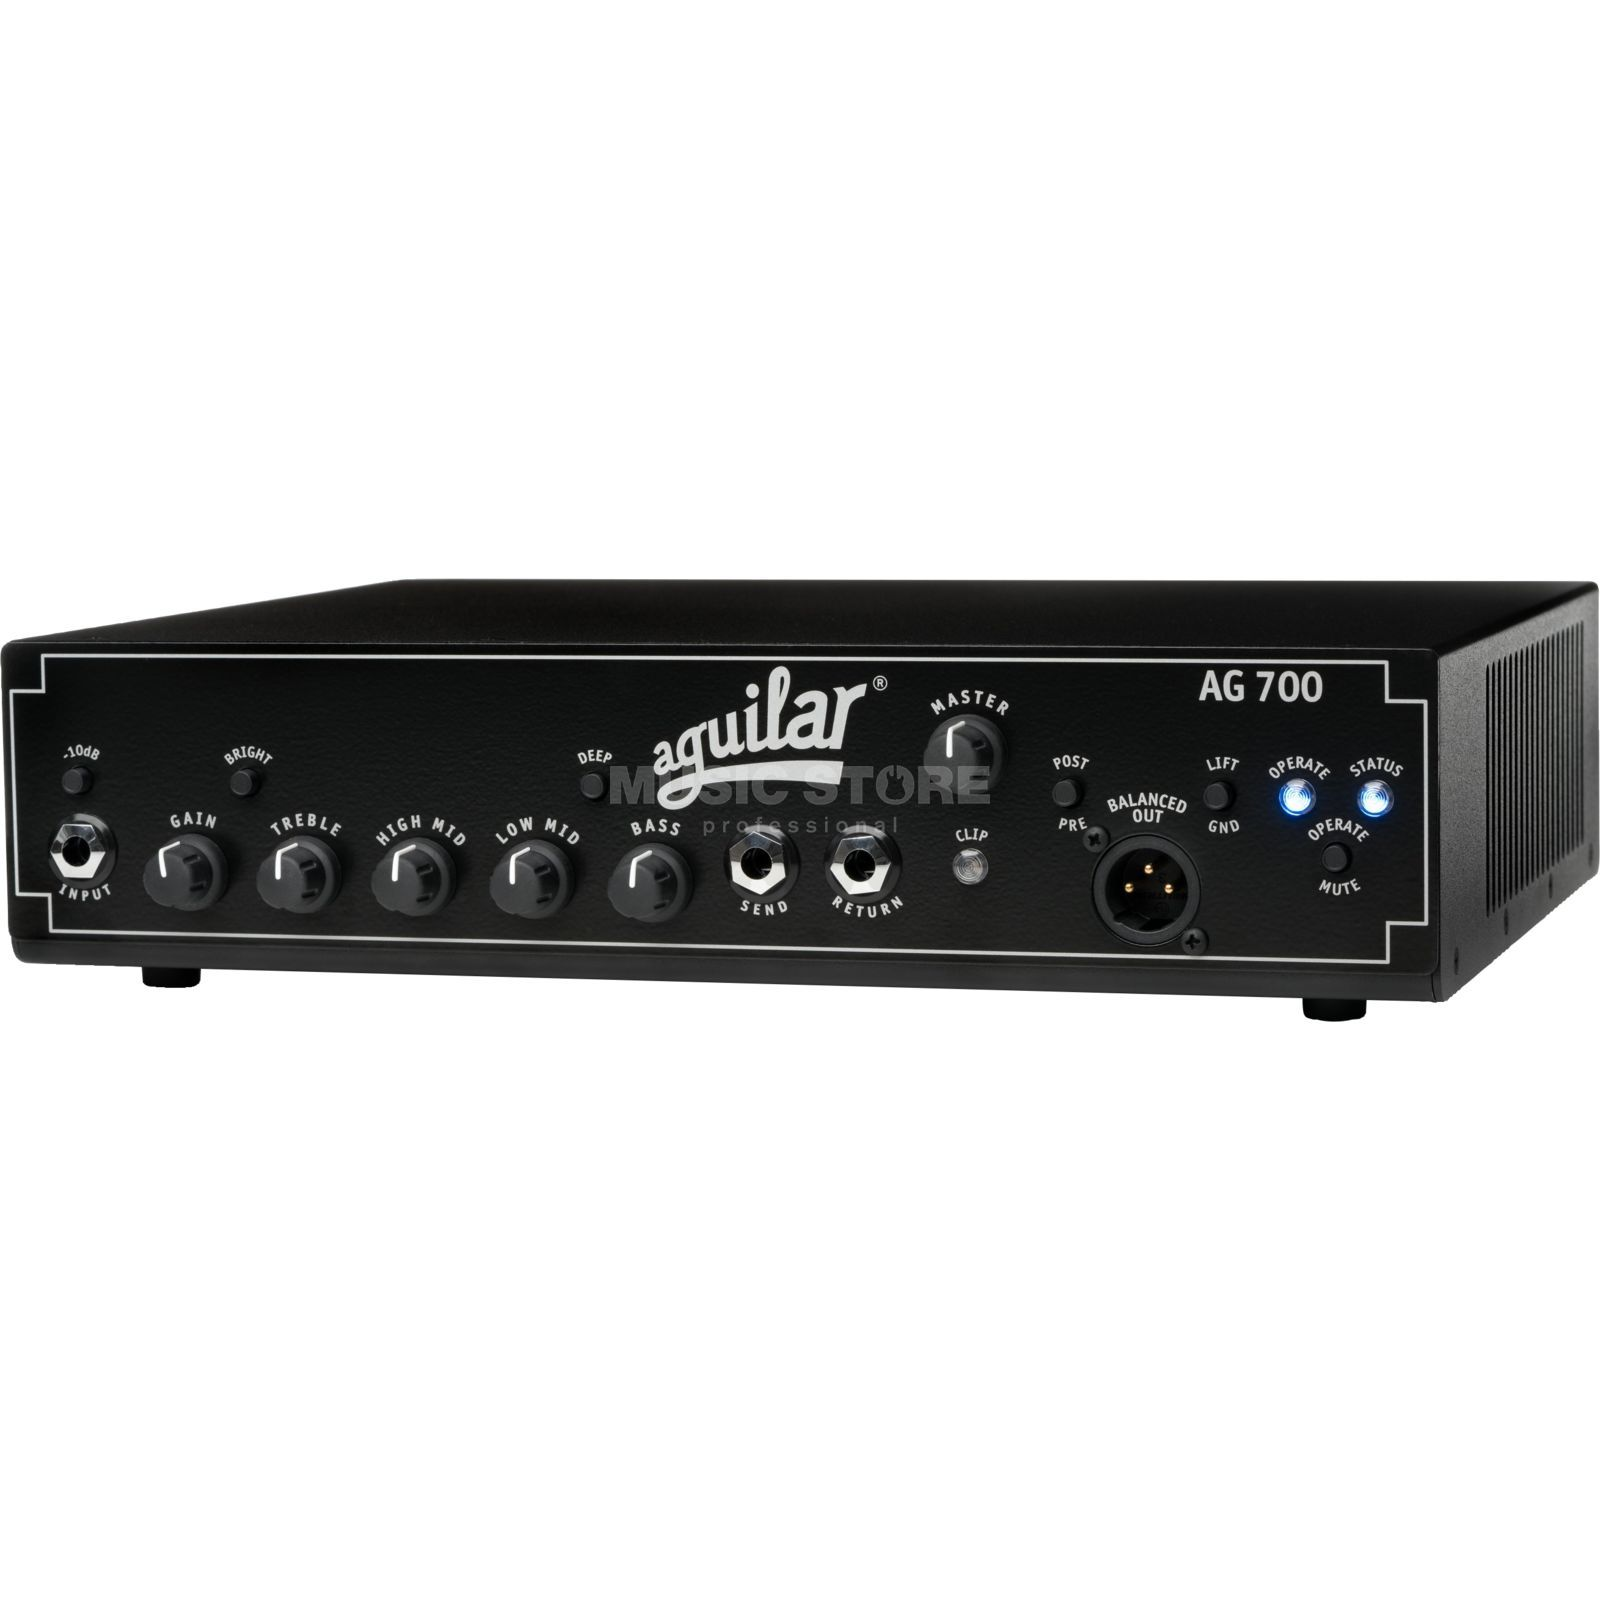 Aguilar AG 700 Product Image